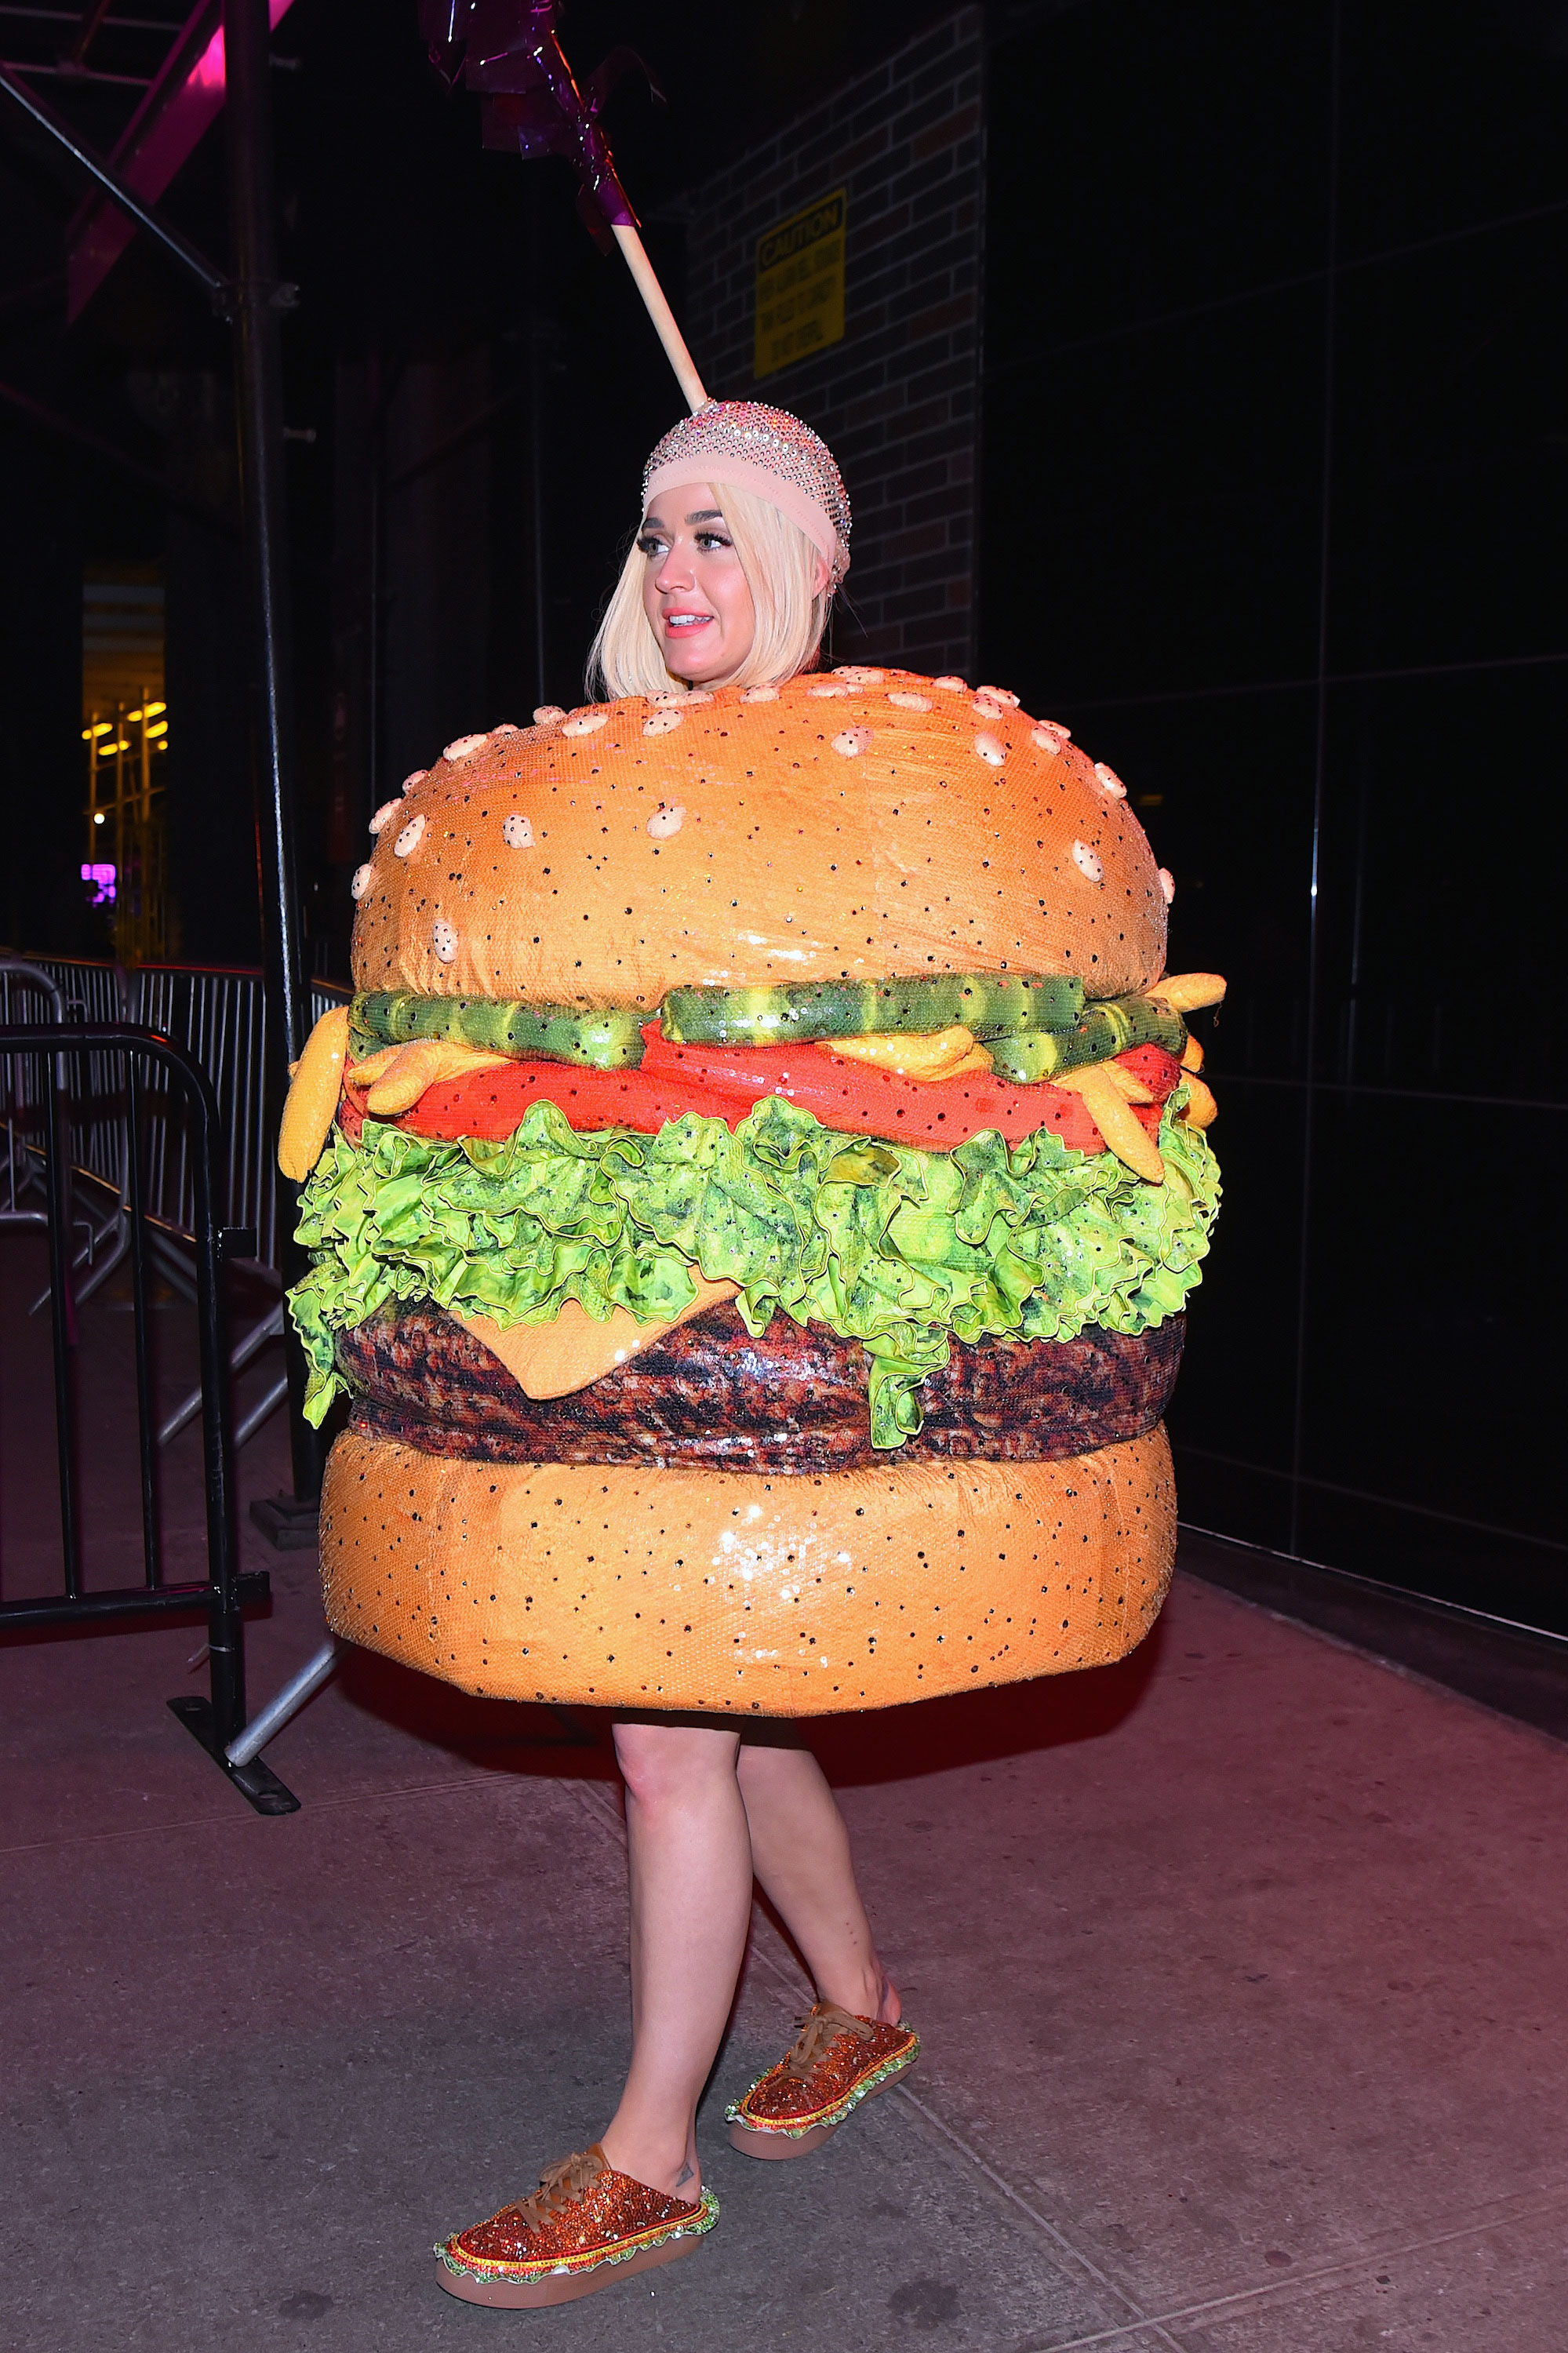 Katy Perry's Shoes Smell Like Fruit MET Gala After Party Cheeseburger - Katy Perry seen out on the 2019 MET Gala day on May 6, 2019 in New York City.